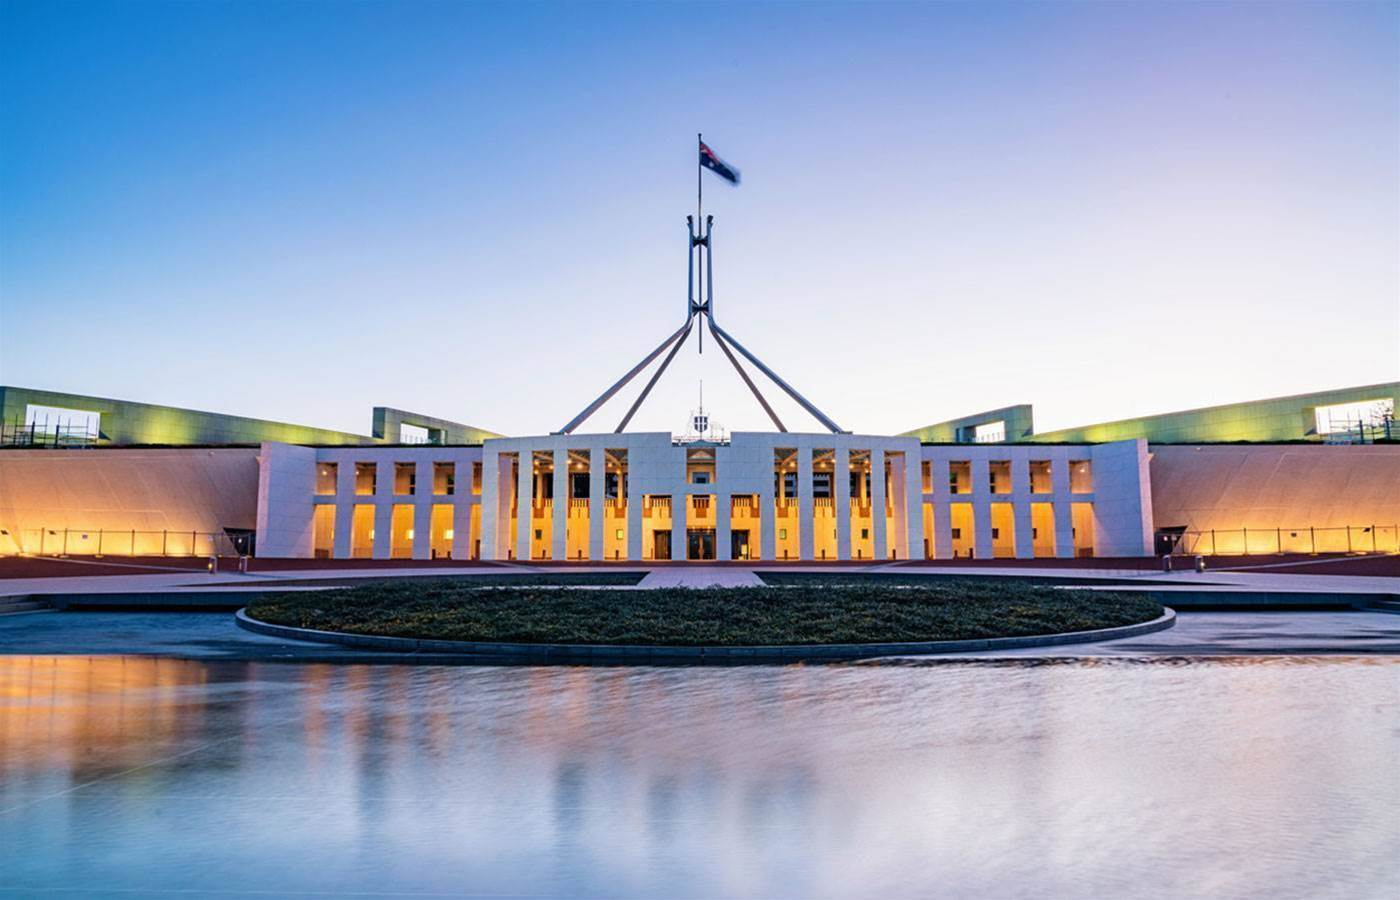 Australia's biggest political parties compromised in IT breach